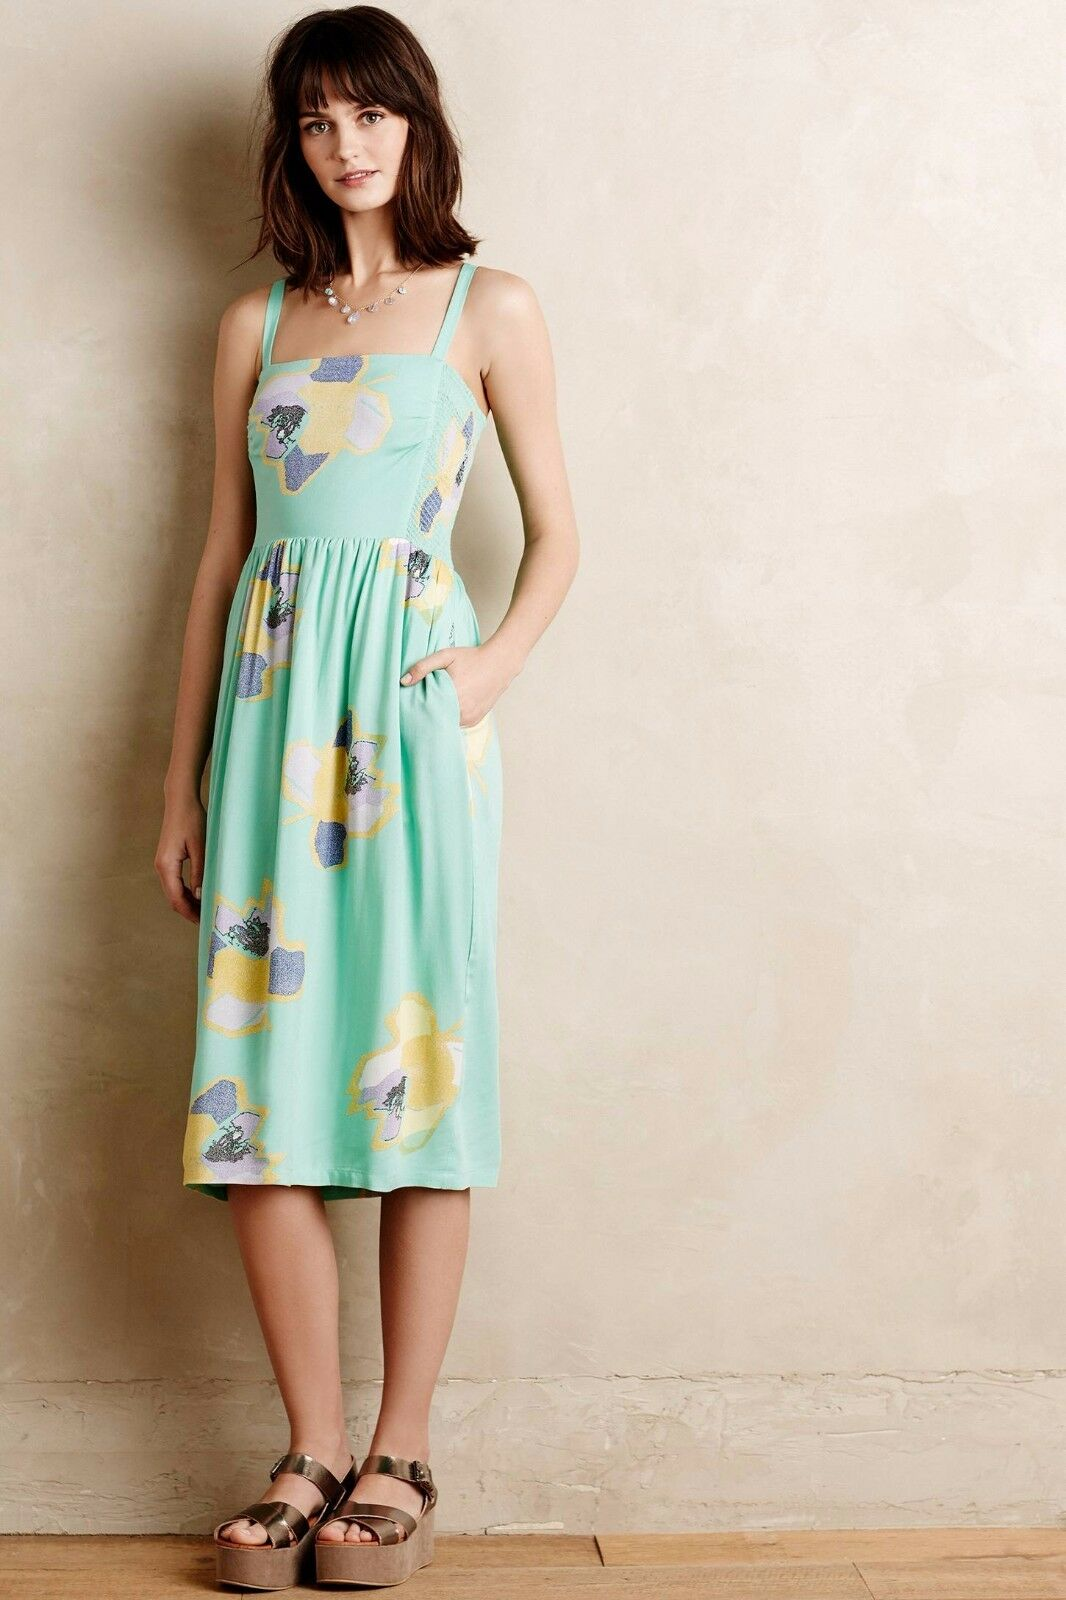 NWT Anthropologie Sketchbook Midi Dress by Corey Lynn Calter, Calter, Calter, colors, M, L 246f4f